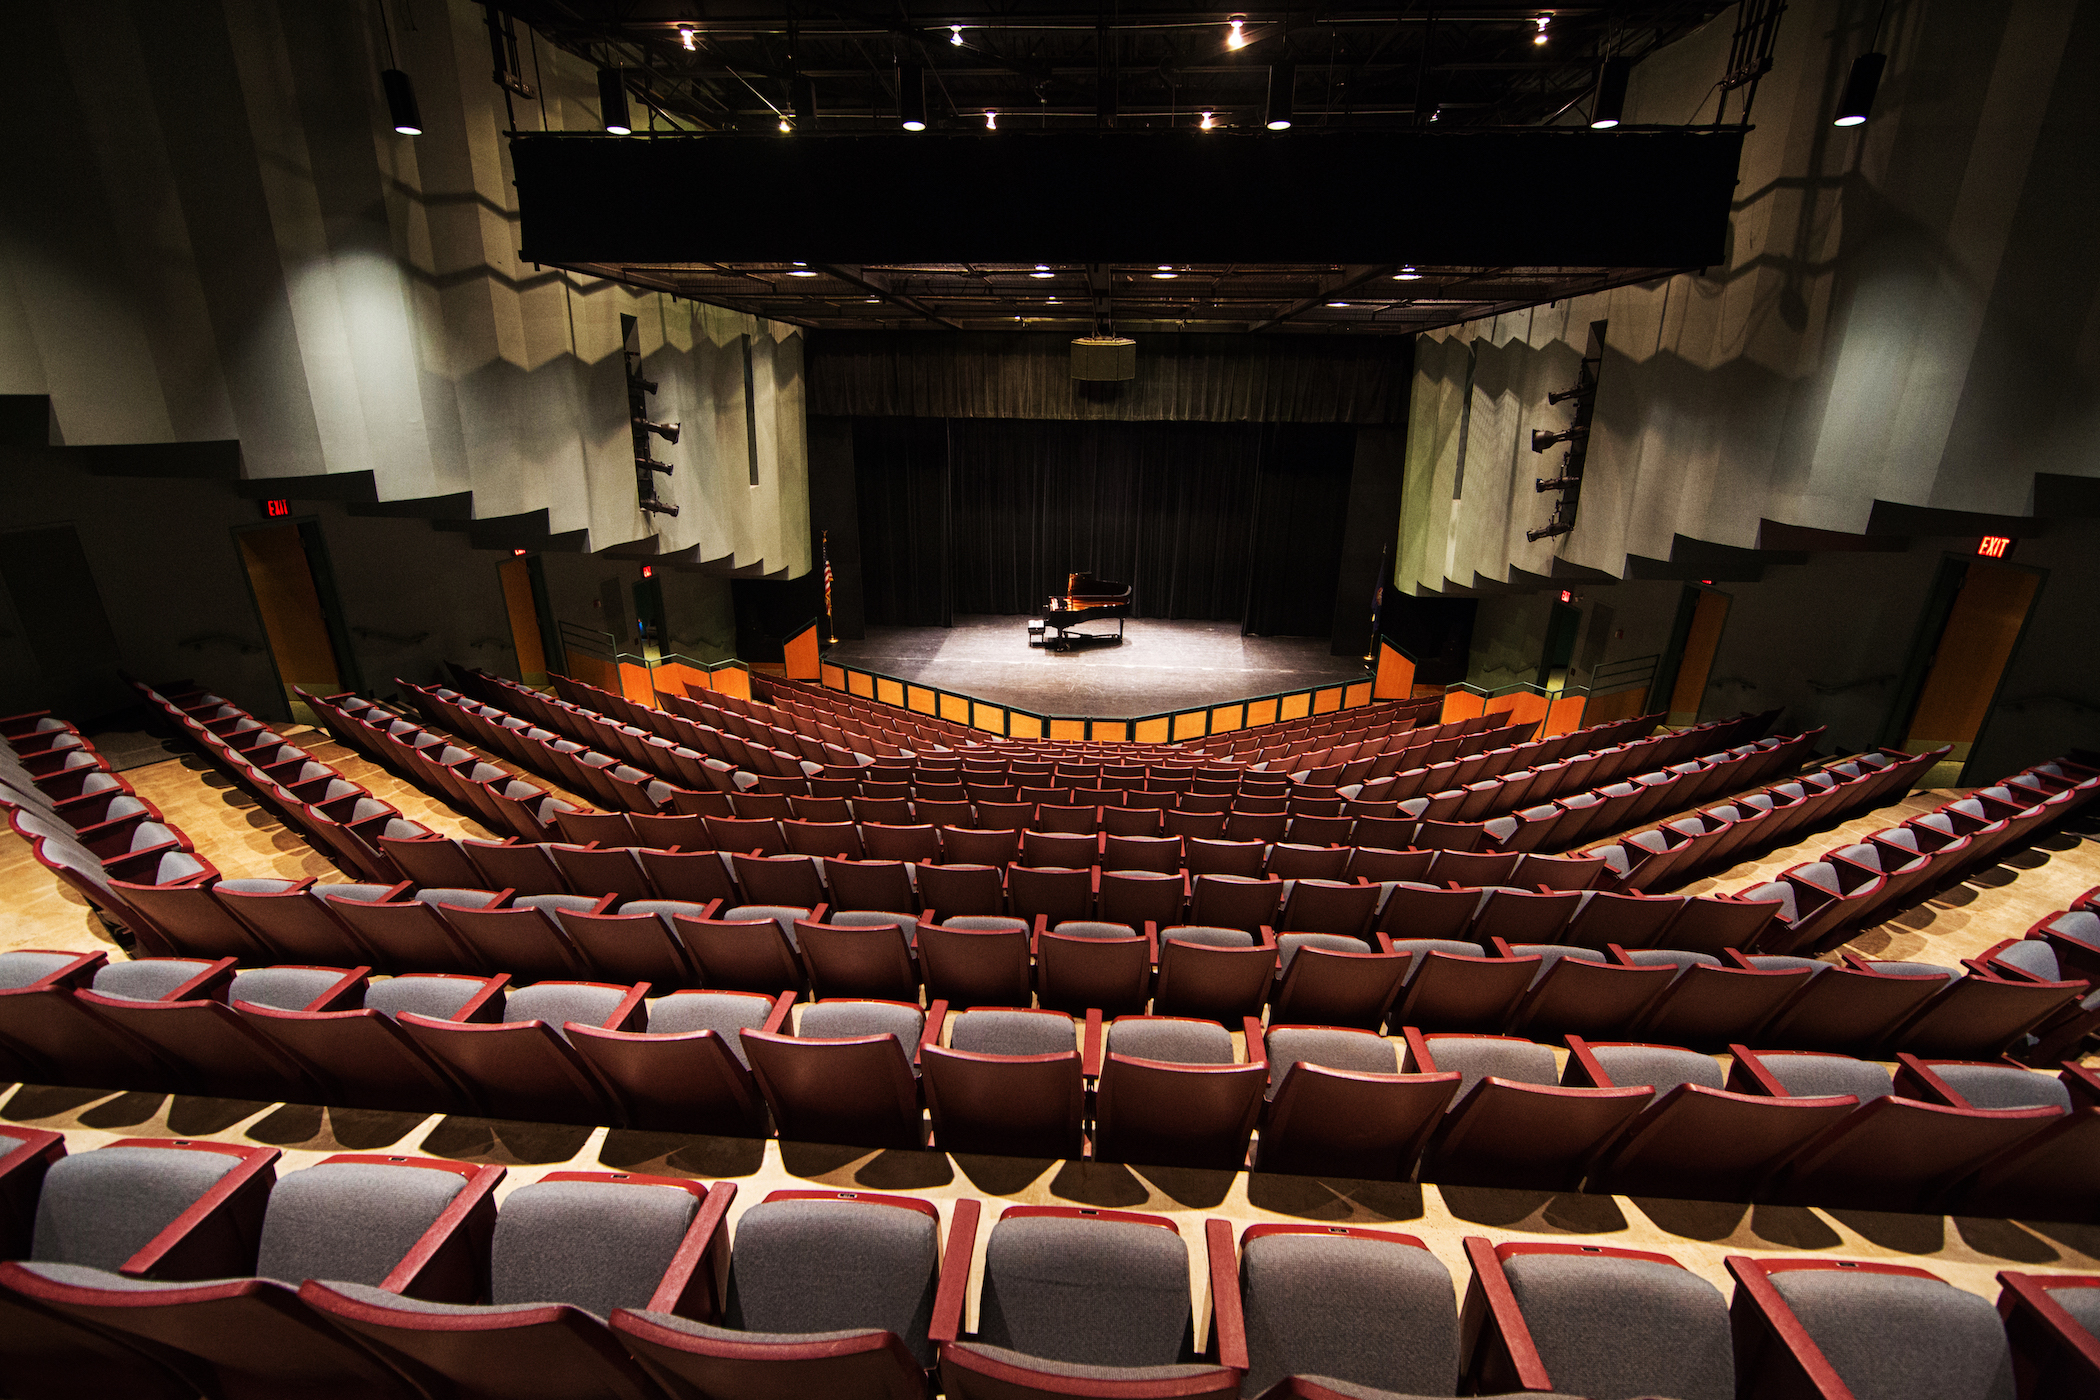 Picture of theatre seats  in Dickinson Theater looking downward at a stage with a grand piano